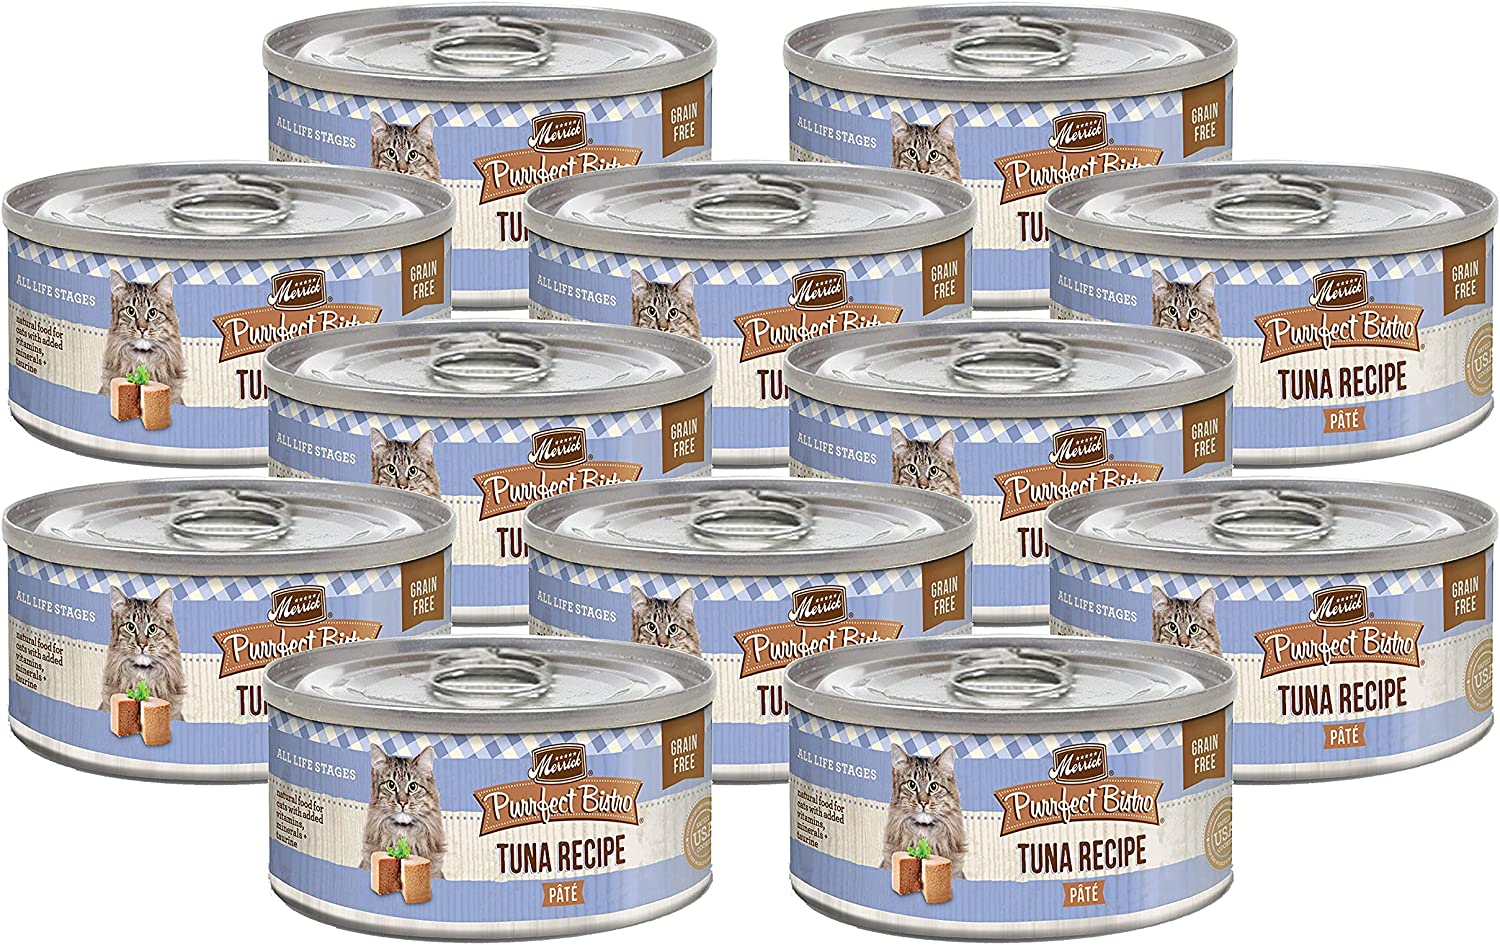 Merrick Purrfect Bistro Canned Wet Cat Food, Tuna Recipe Pâté, Grain Free Natural Food with Added Vitamins & Minerals, Cat Food for All Life Stages, 3 OZ Can (Pack of 12)